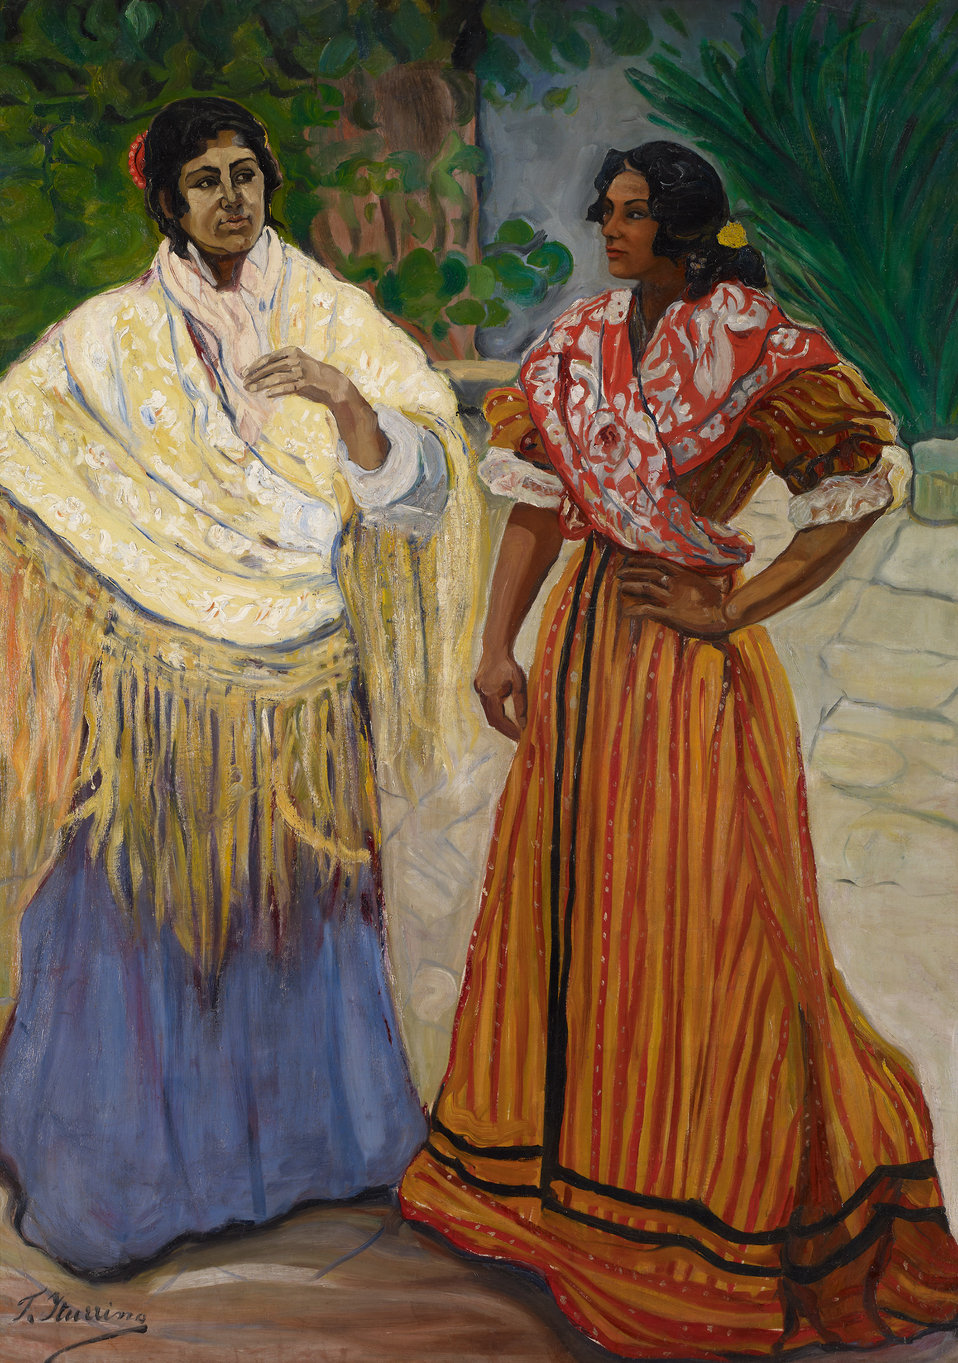 Two Gypsies. Oil on canvas, 180 x 129 cm, Inv. CTB.1996.51    Museo Carmen Thyssen          Native name Museo Carmen Thyssen   Location Málaga, Spain    Coordinates 36° 43′ 17″ N, 4° 25′ 22″ W        Established 2011   Website www.carm